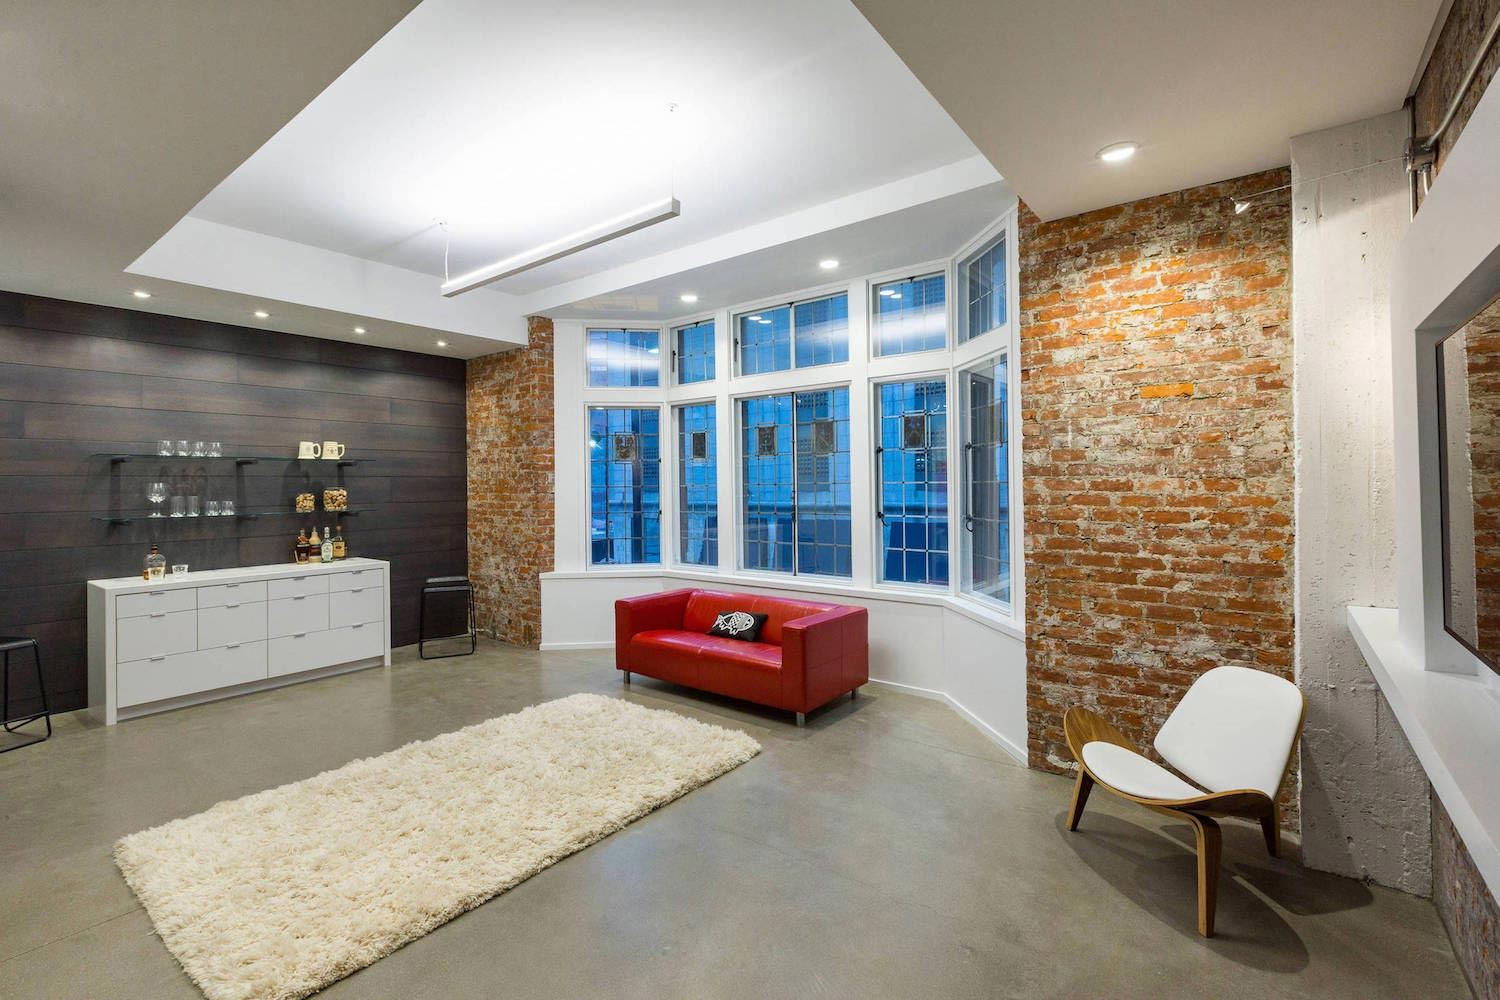 Modern authentic loft like living environment expressed industrial yet refined aesthetic ryan duebber architect caandesign 09